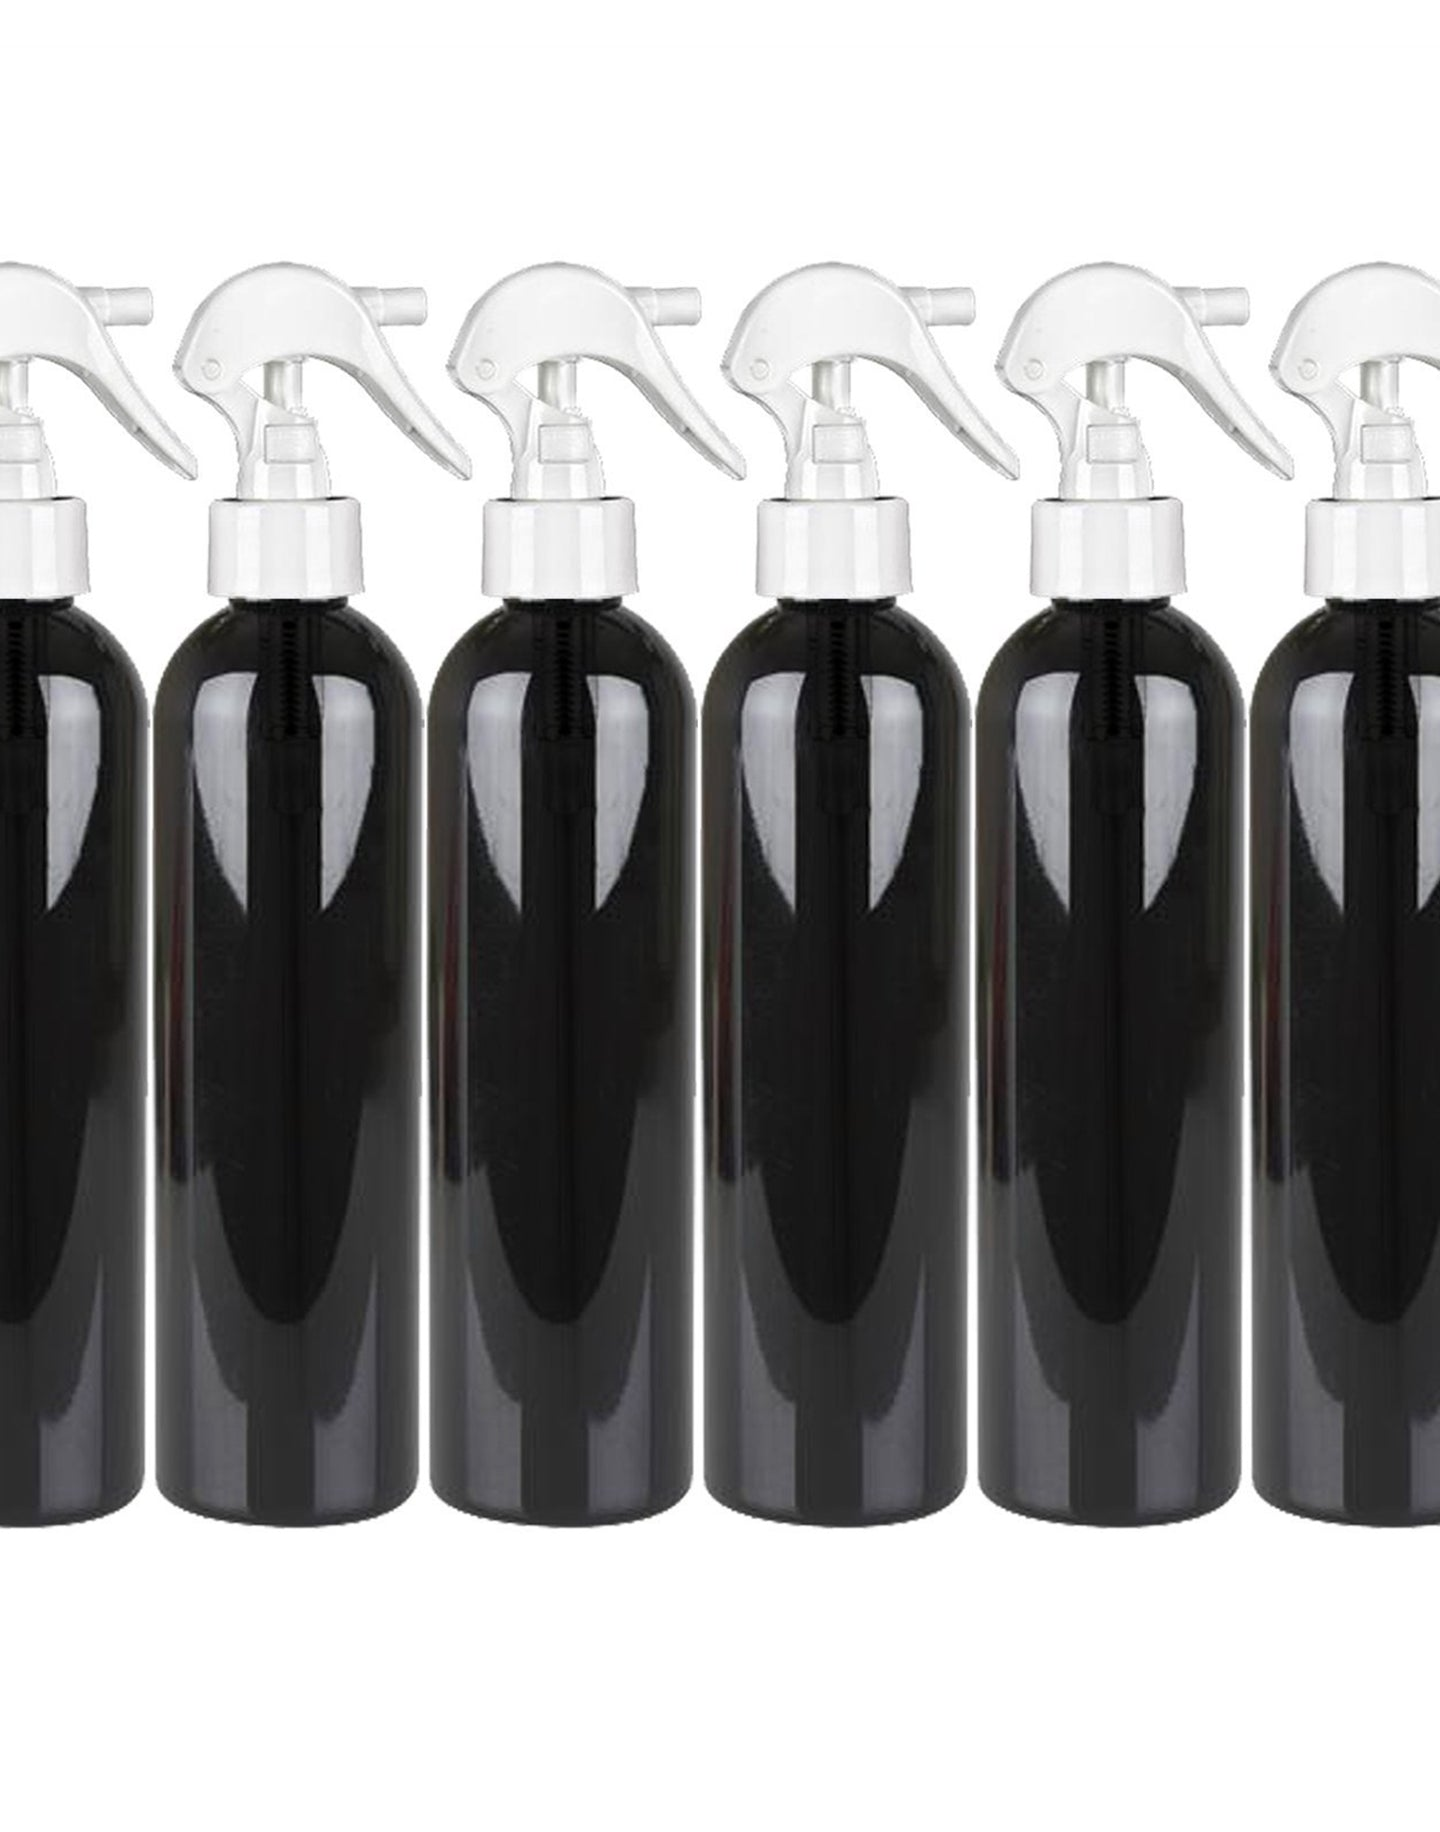 MoYo Natural Labs 8 oz Spray Bottles, Trigger Sprayer Empty Travel Containers, BPA Free PET Plastic for Essential Oils and Liquids/Cosmetics (6 pack, Black)